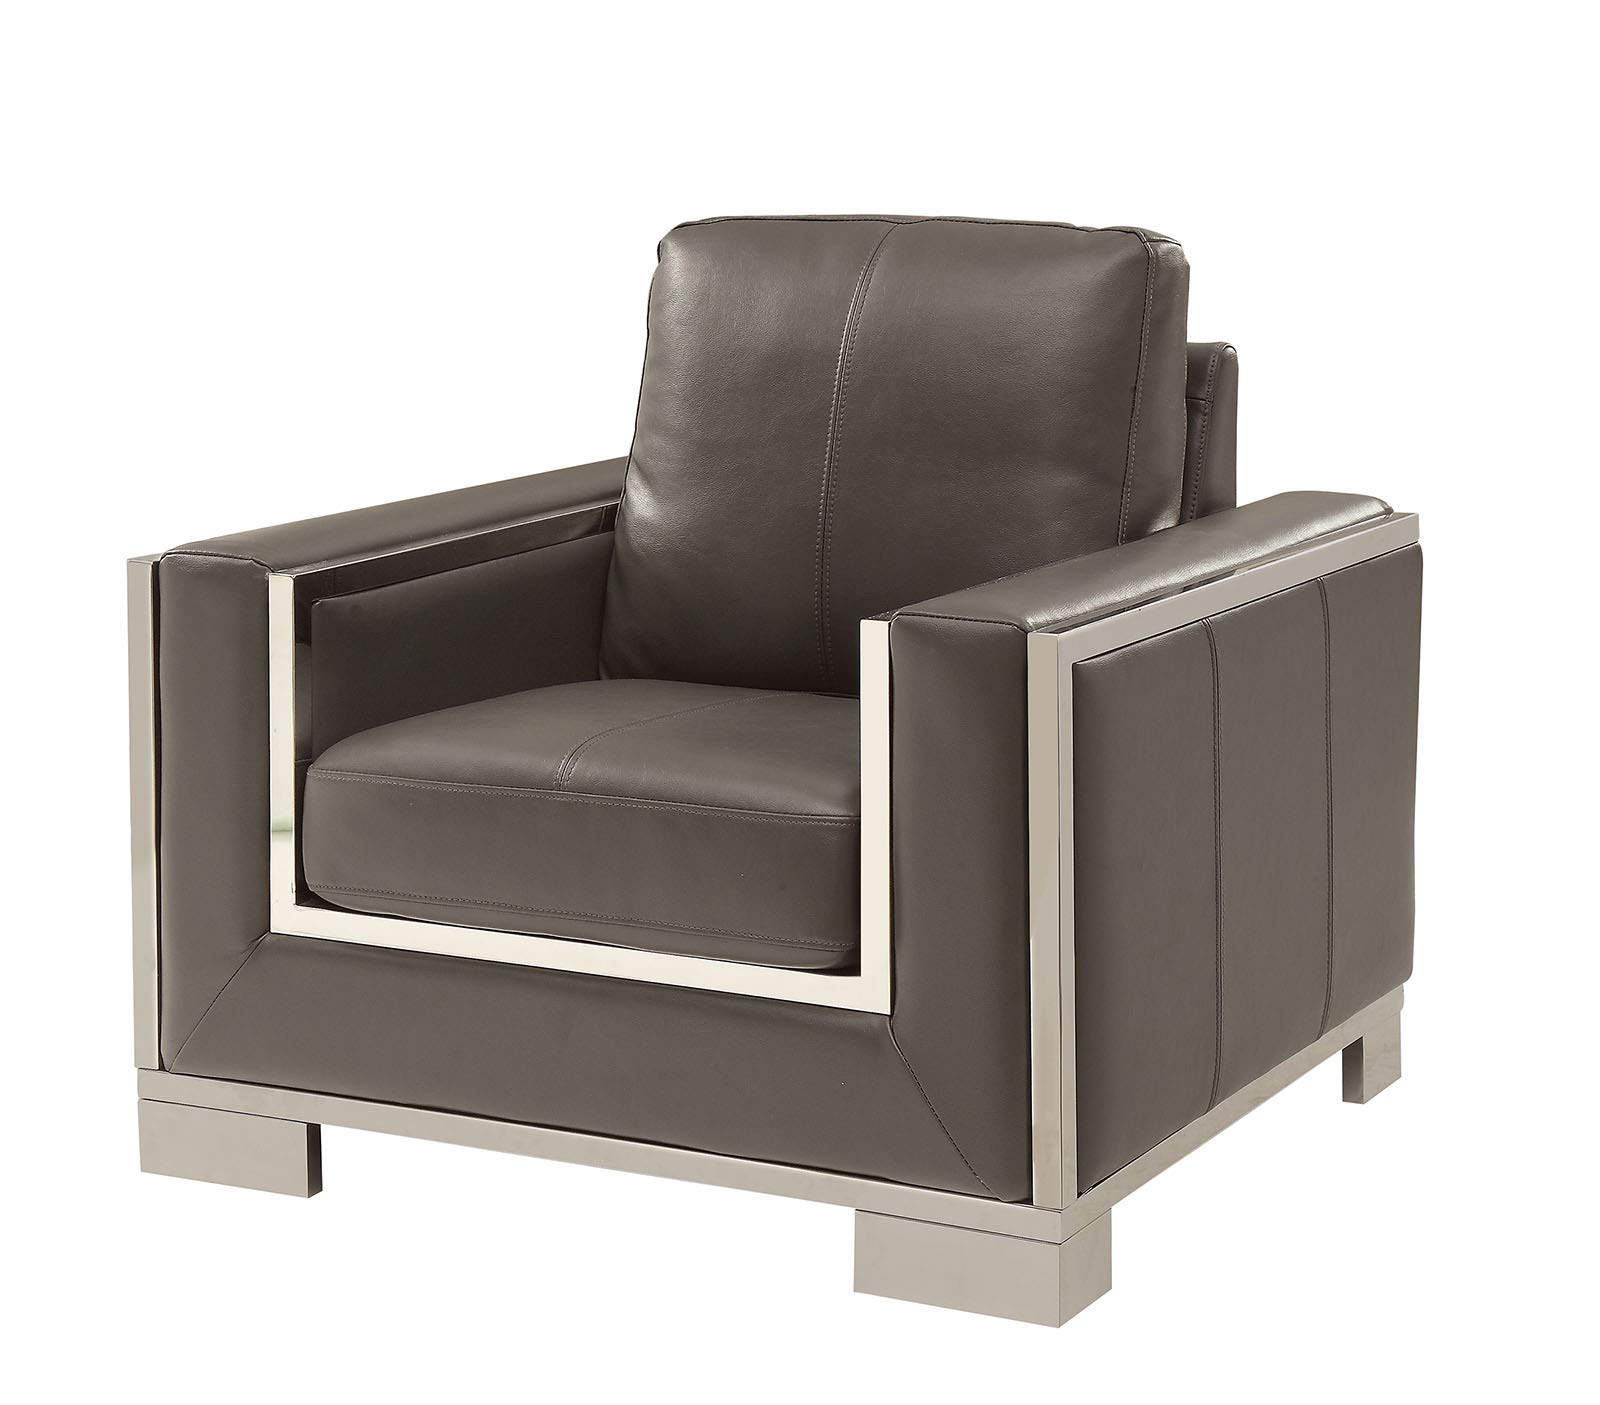 CDM product Benzara BM181361 Leather Upholstery Chair, Gray and Silver big image